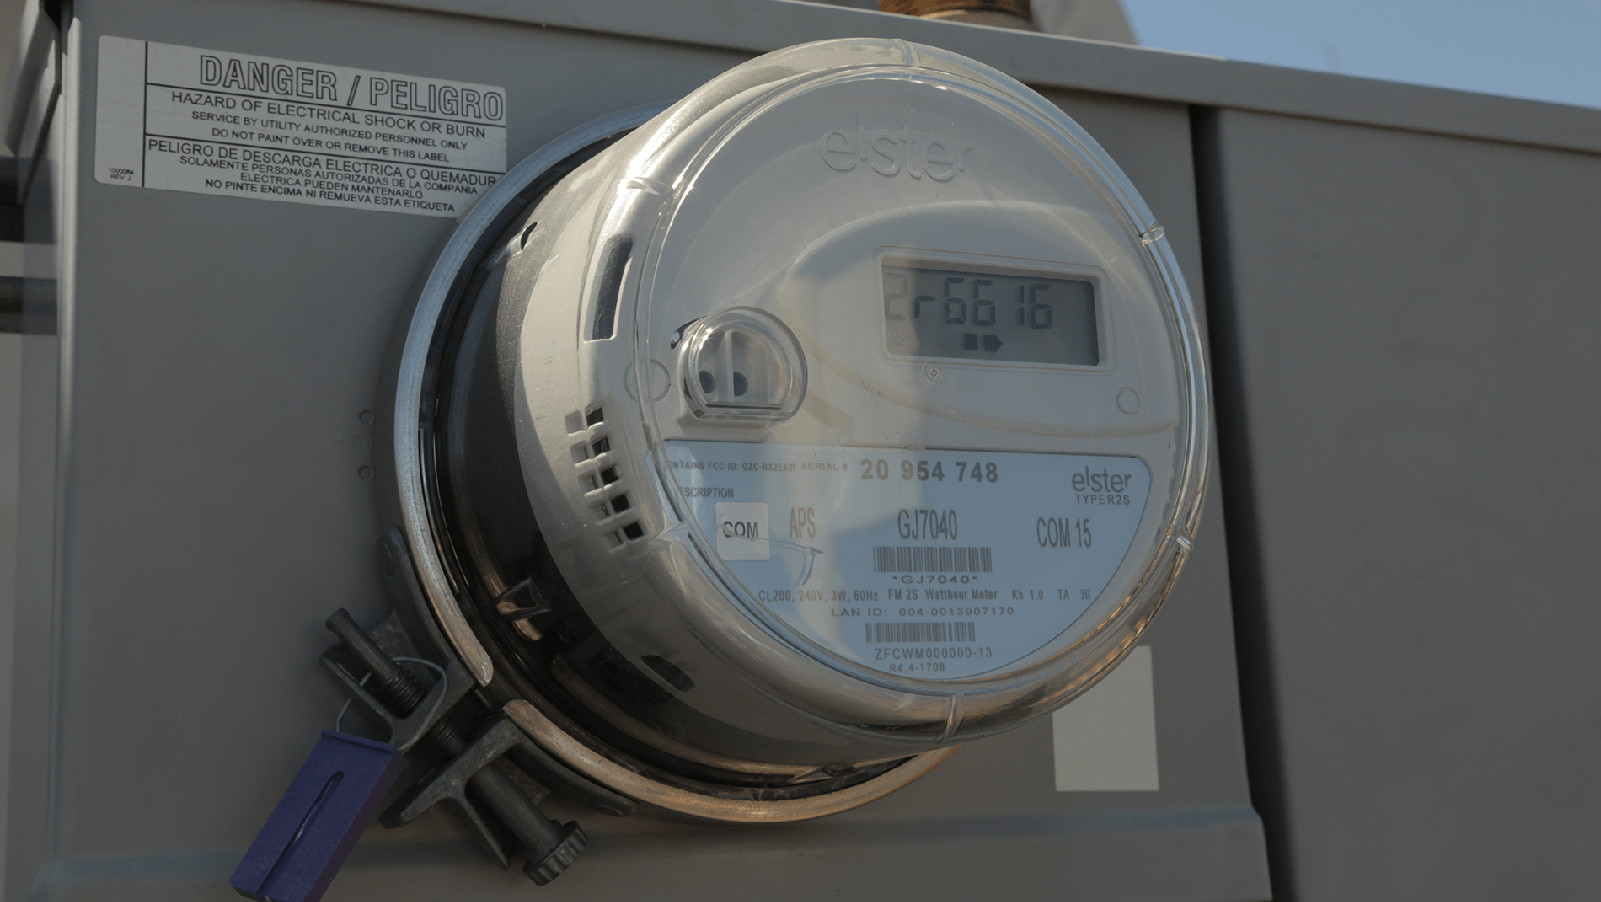 Close up view of a meter.